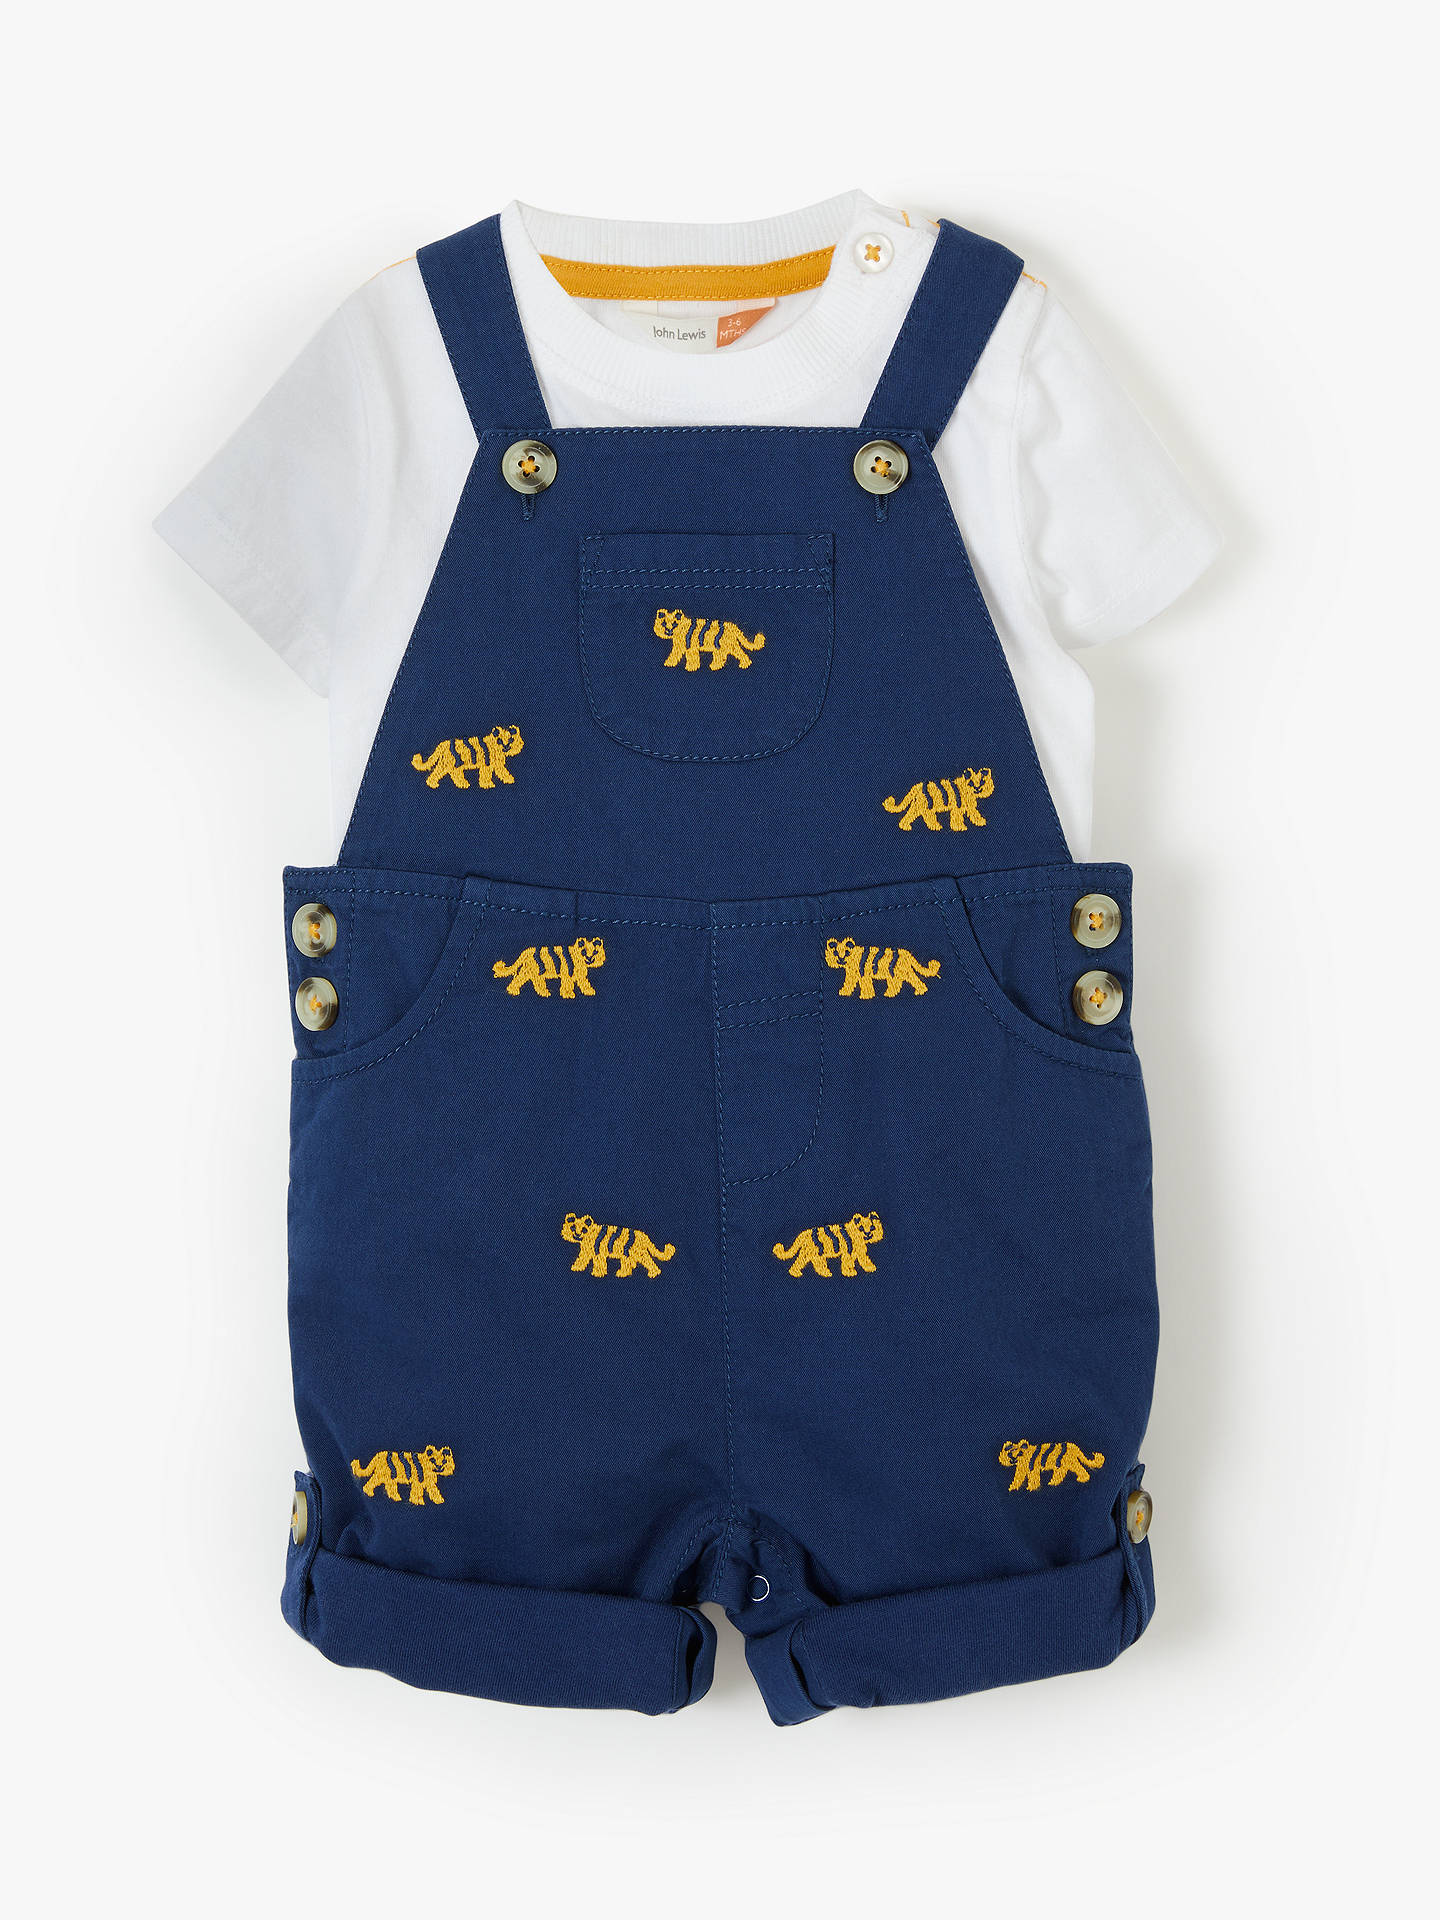 Boys' Clothing (0-24 Months) Ted Baker Baby Boy Shorts Dungarees Set 0-3 Months Modern Design Baby